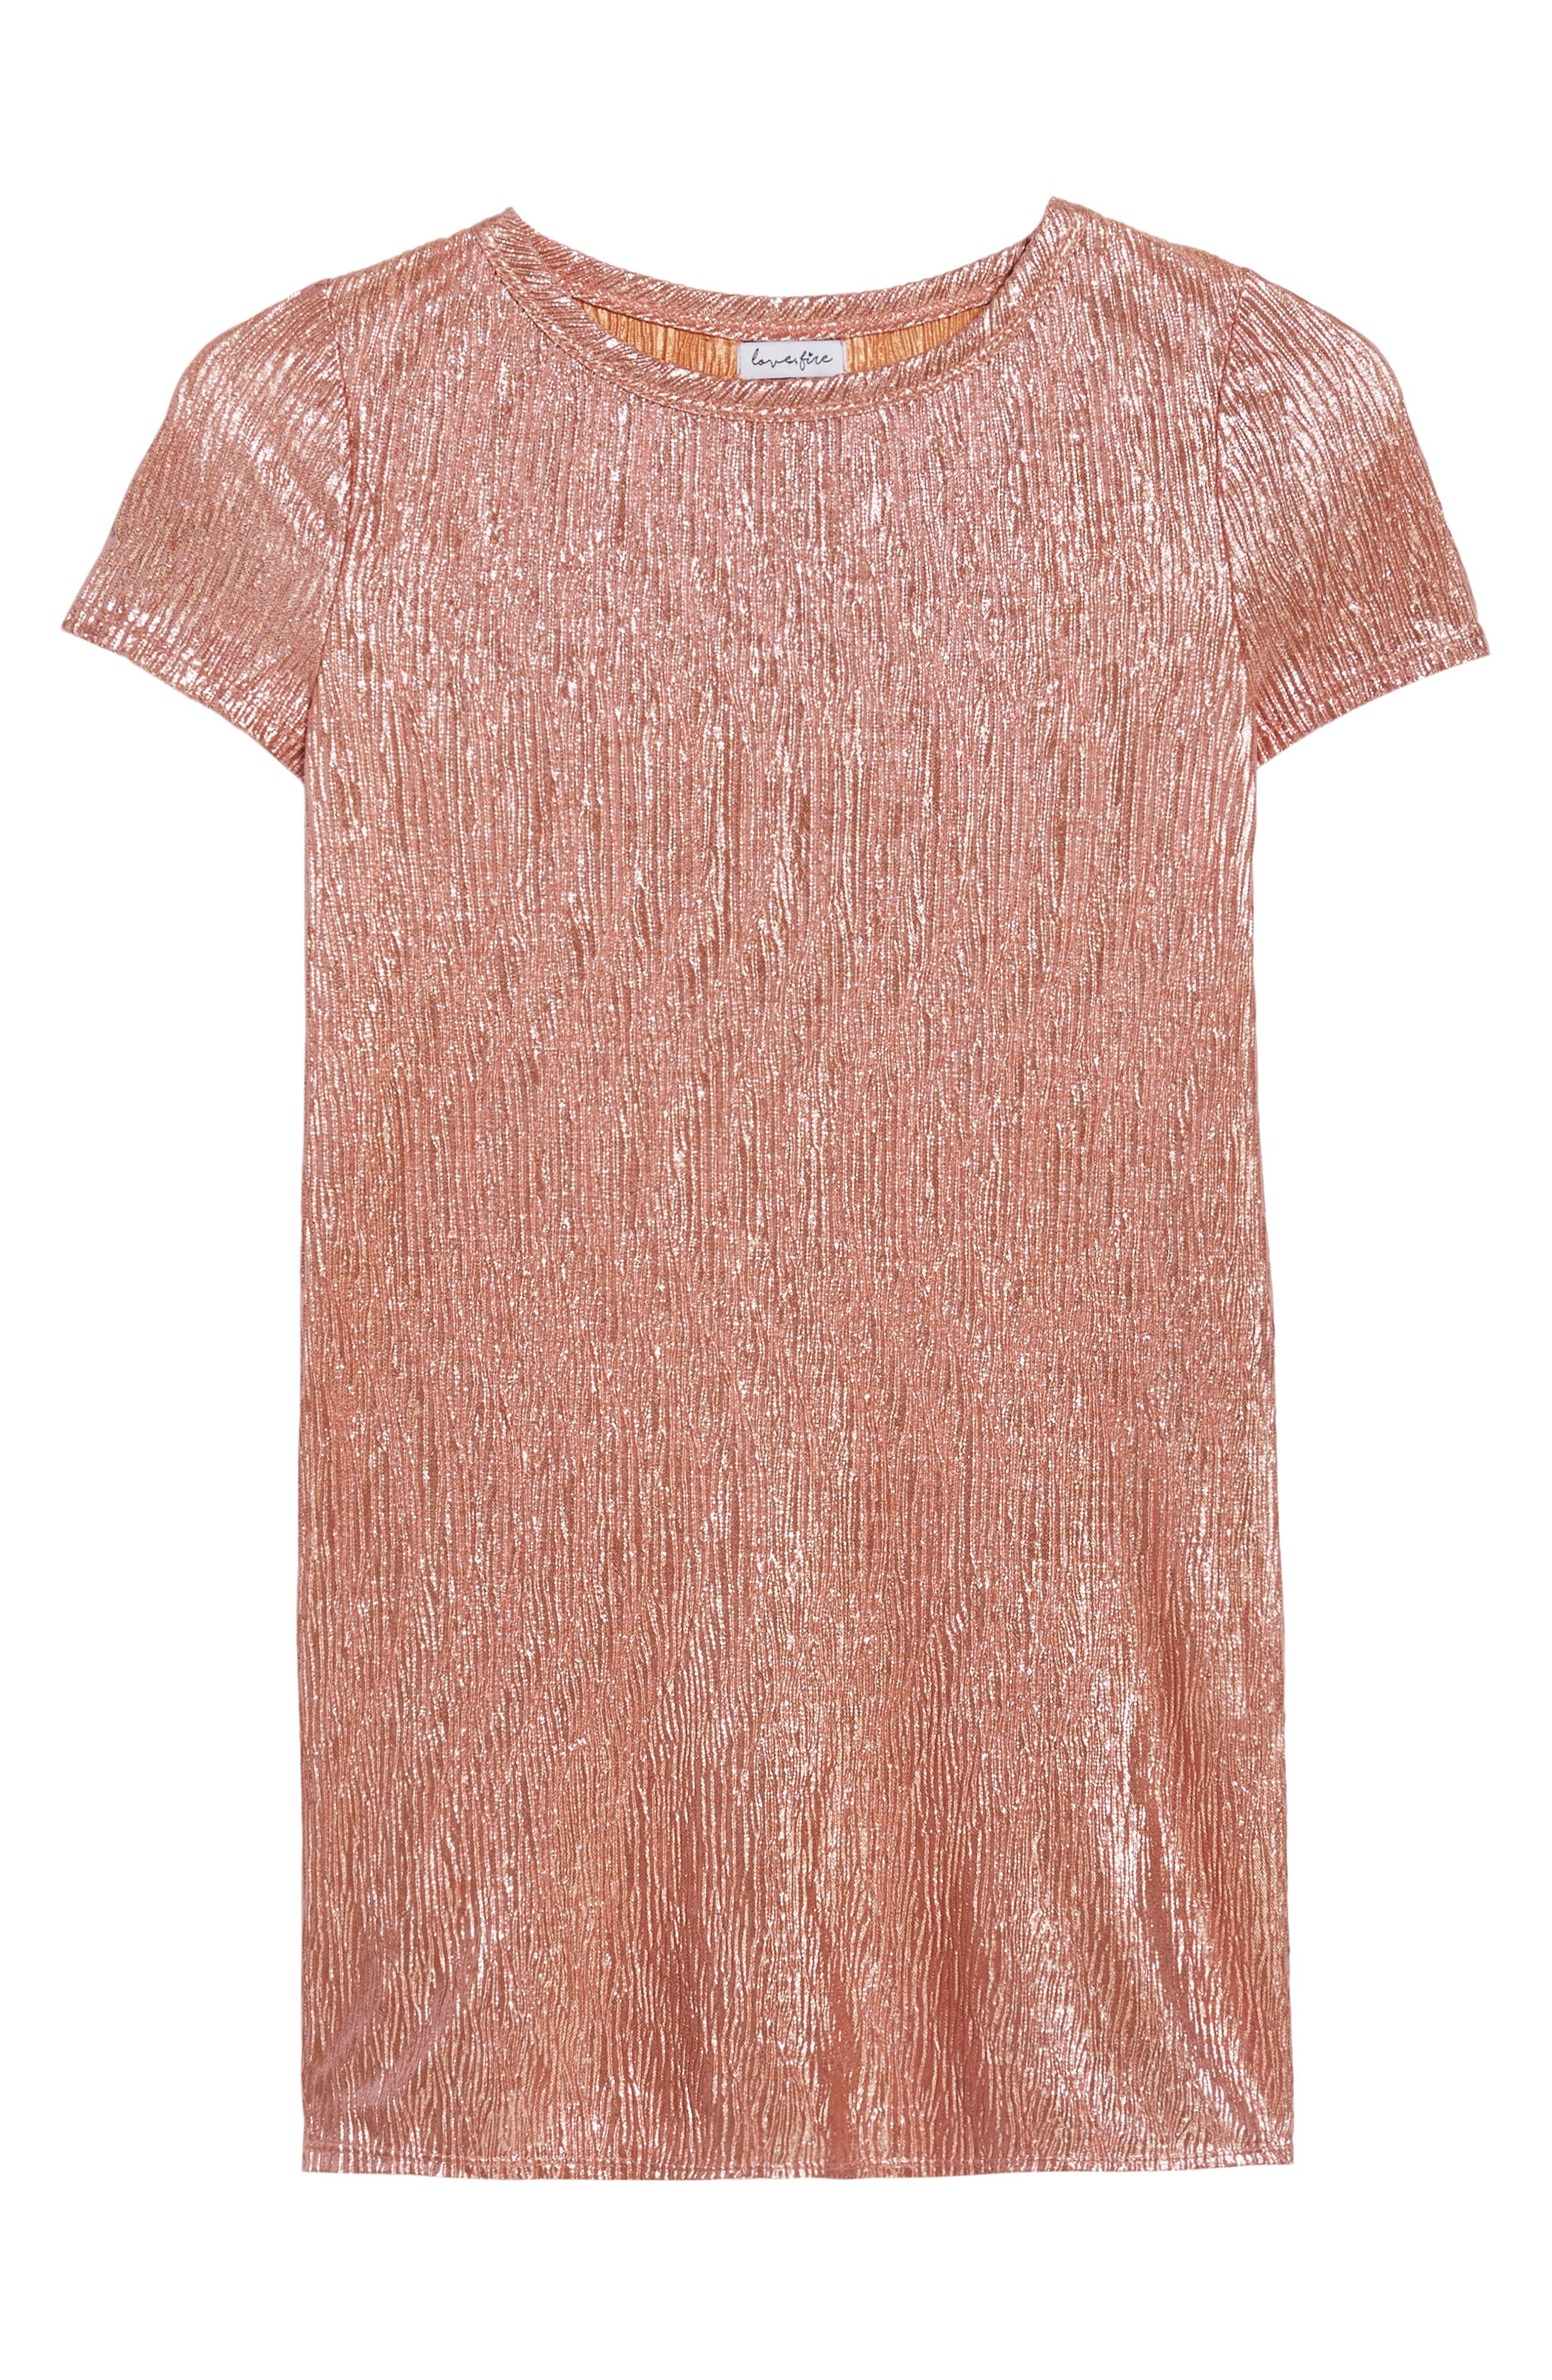 Love Fire Crinkled Metallic T-Shirt Dress,                         Main,                         color, 681